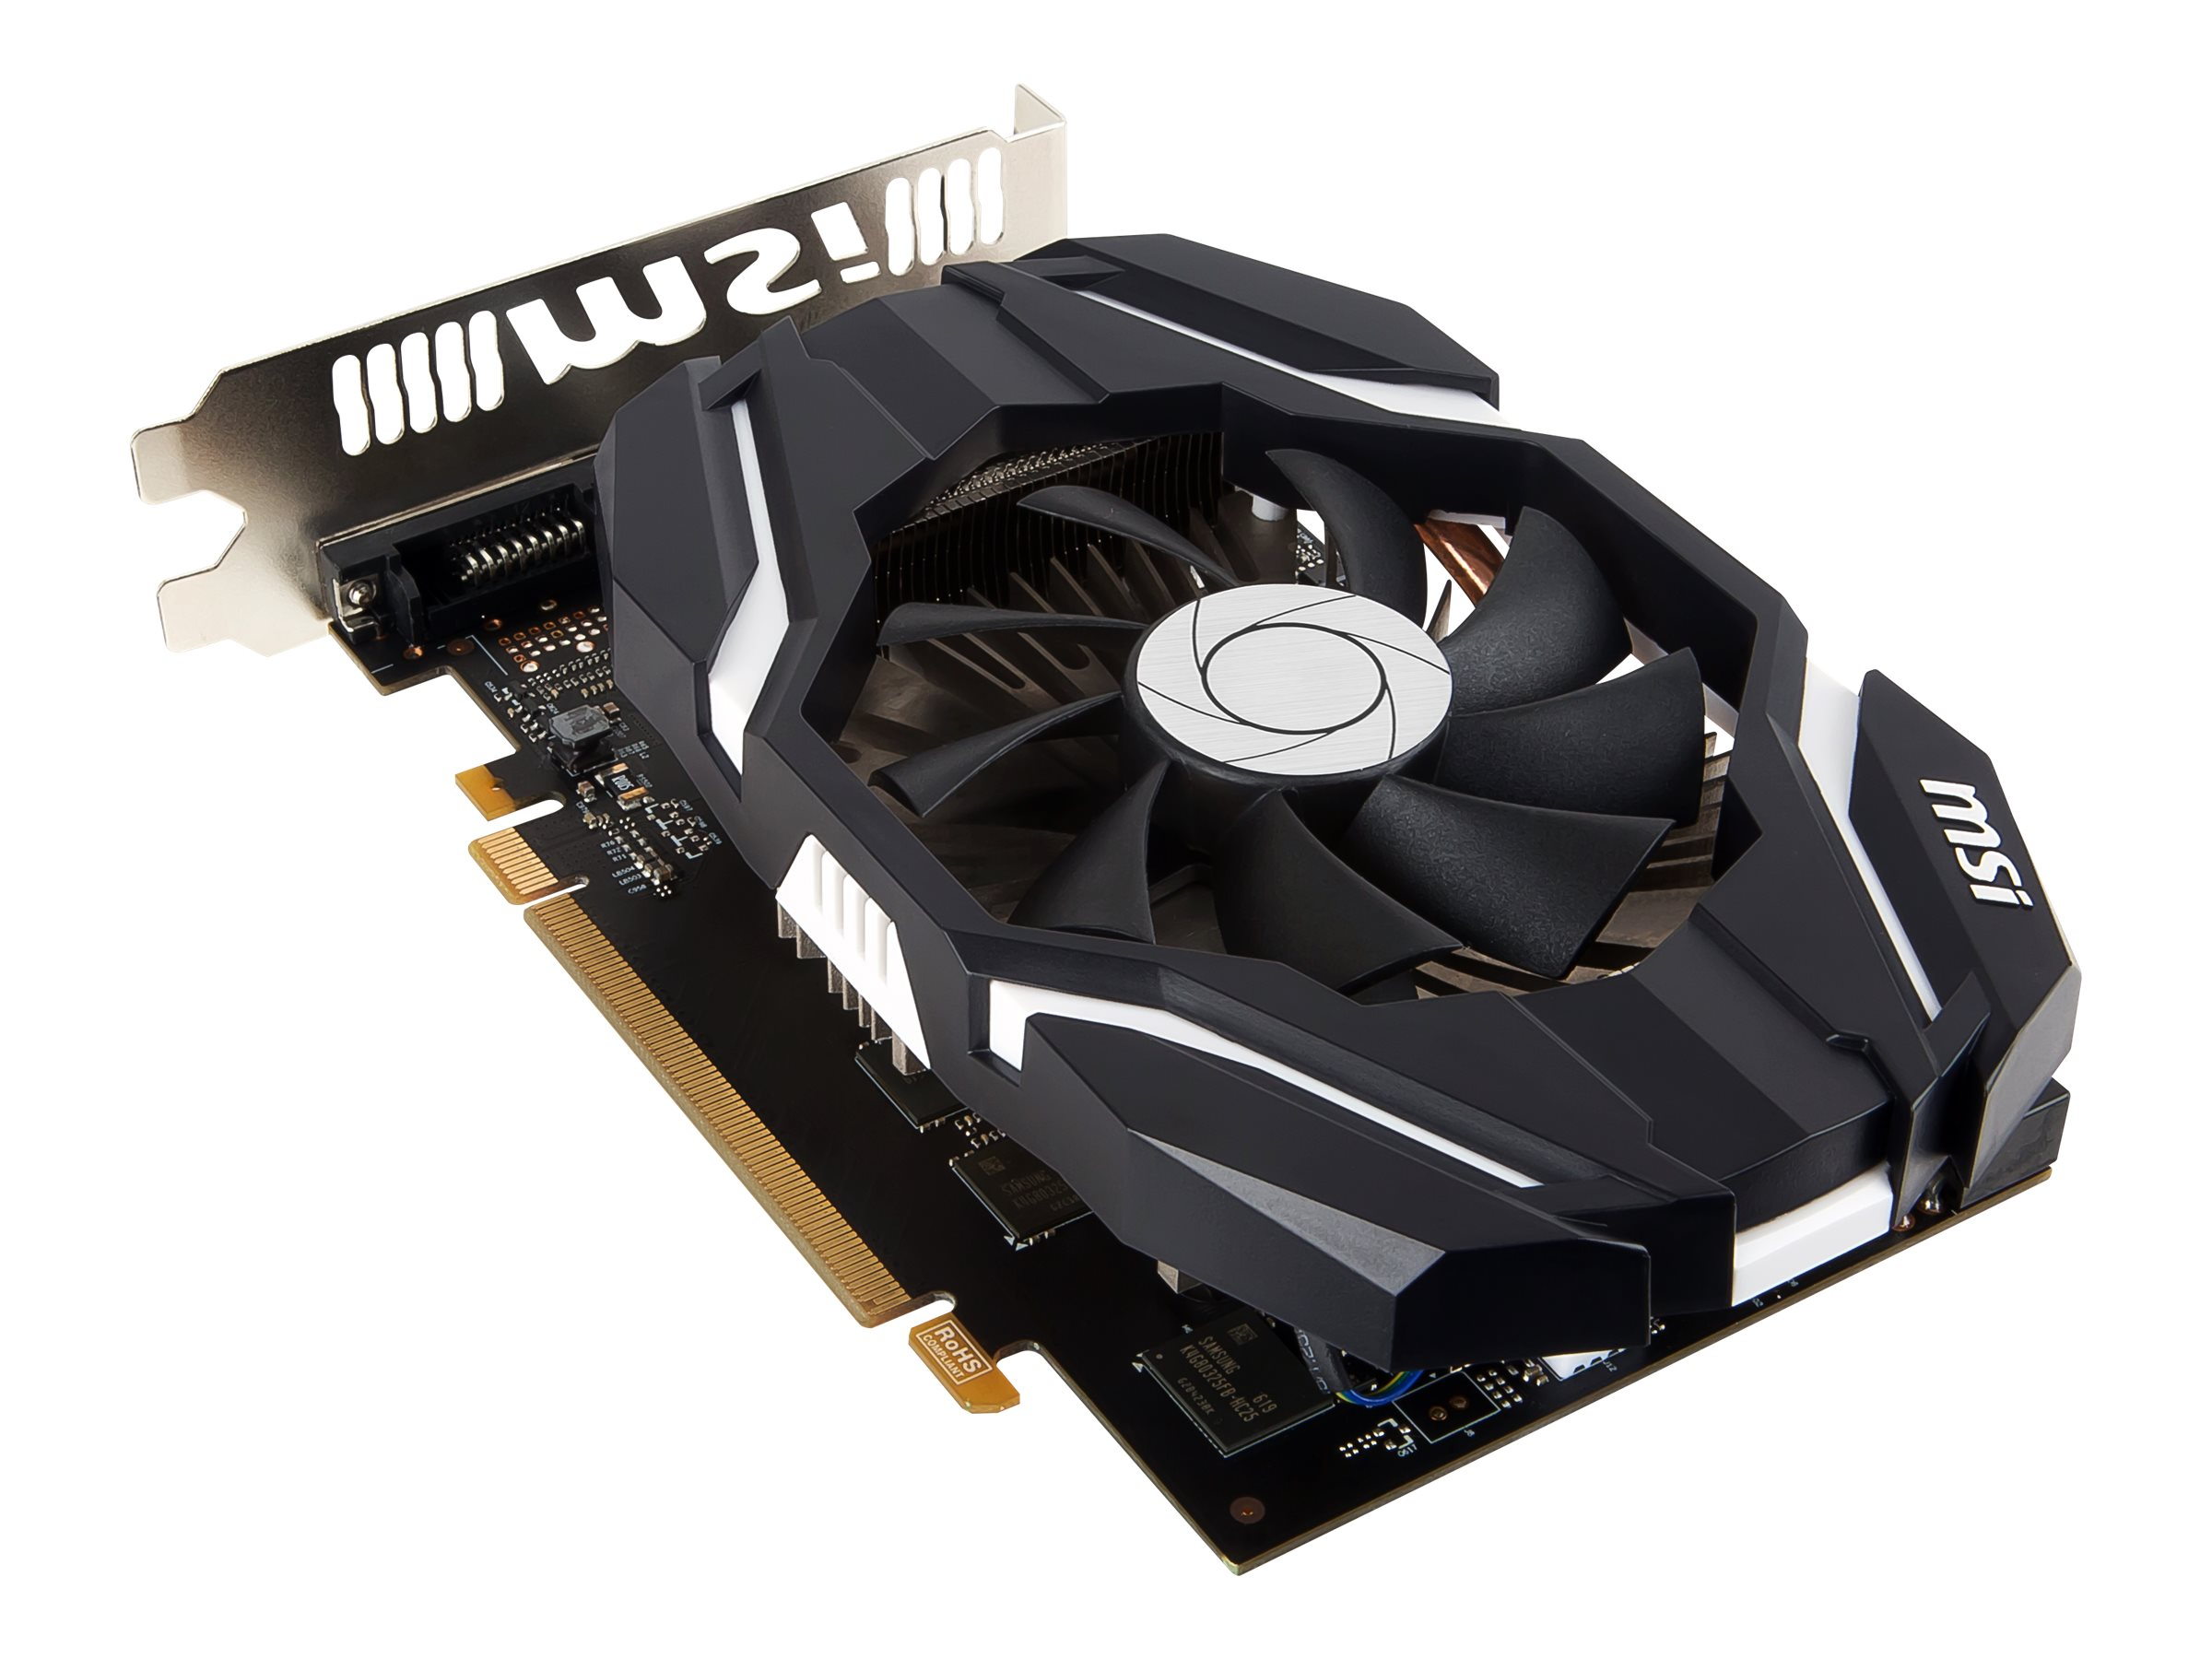 Microstar NVIDIA GeForce GTX 1060 PCIe 3.0 x16 Overclocked Graphics Card, 3GB GDDR5